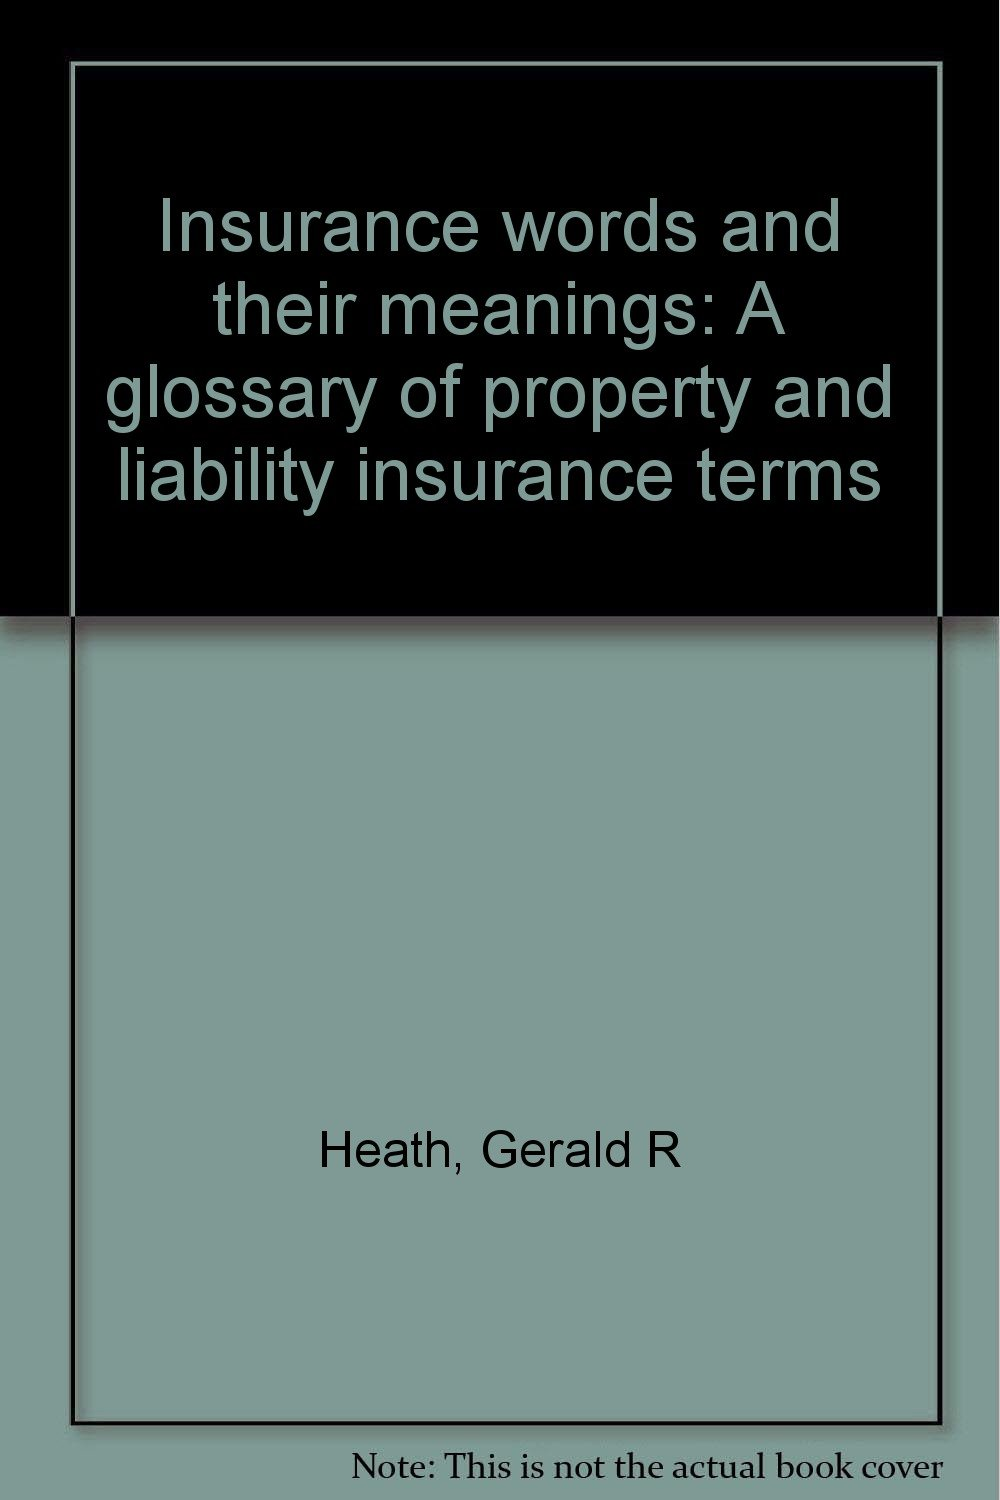 Insurance words and their meanings: A glossary of property and liability insurance terms